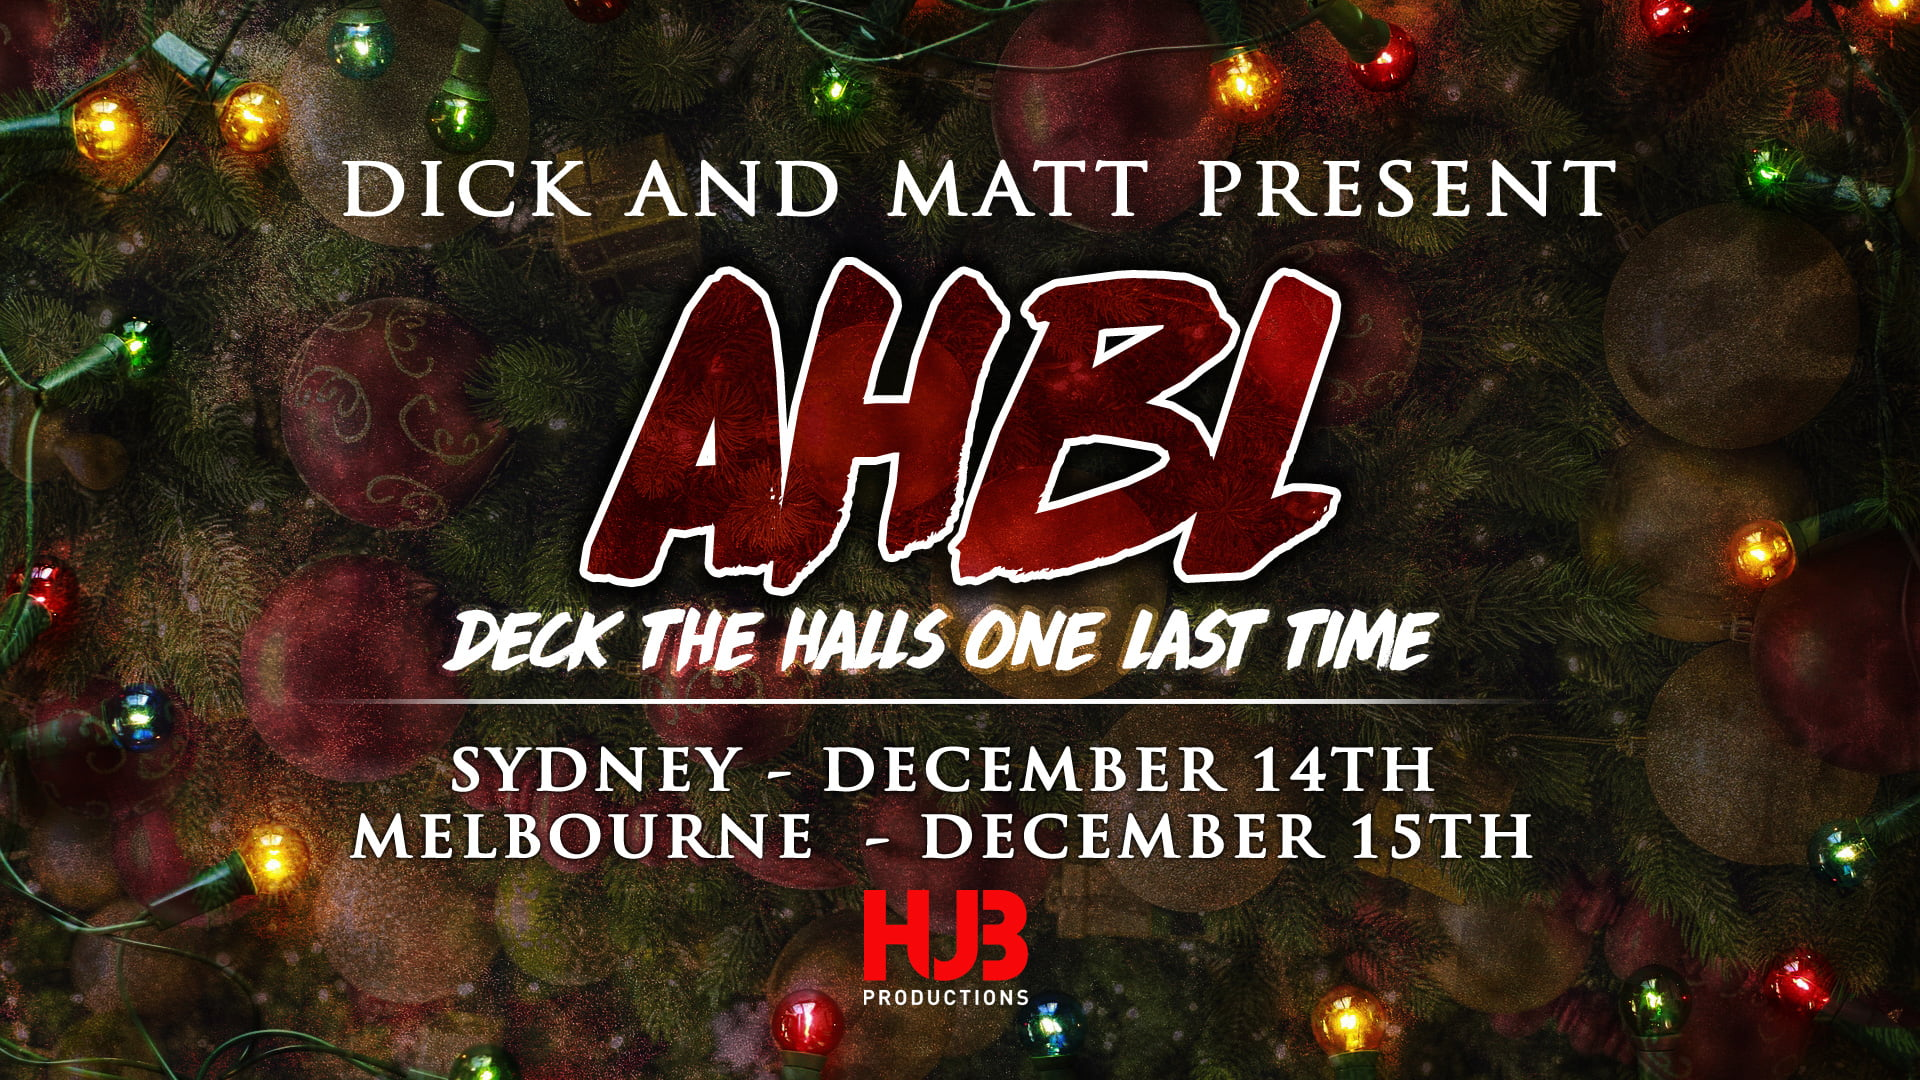 AHBL Xmas 5: Deck the Halls One Last Time